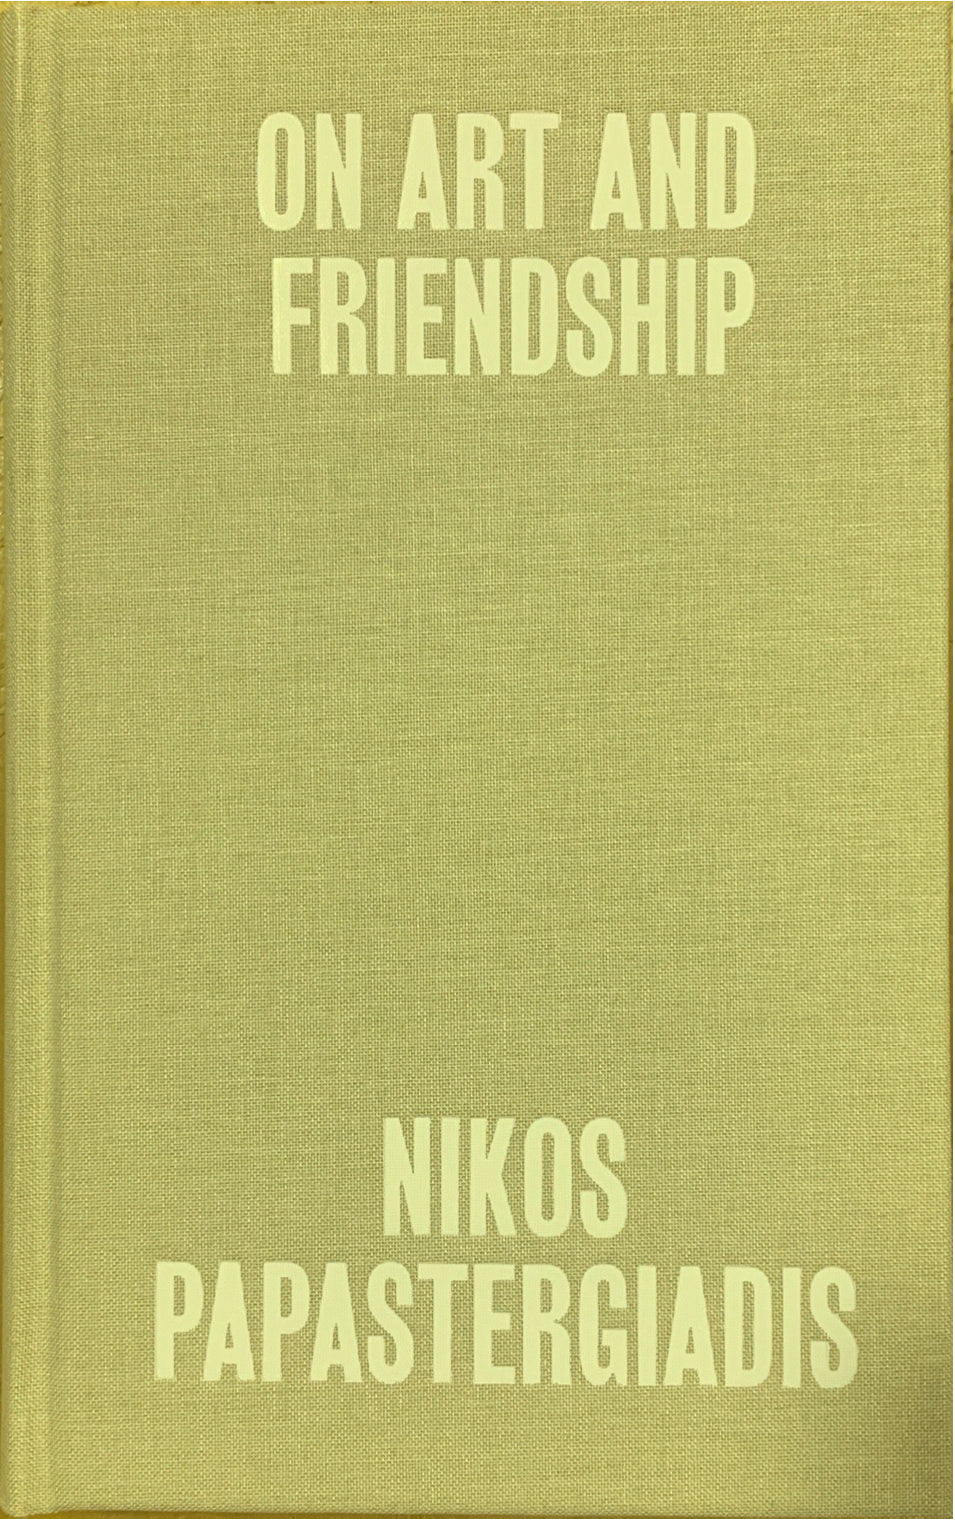 On Art and Friendship